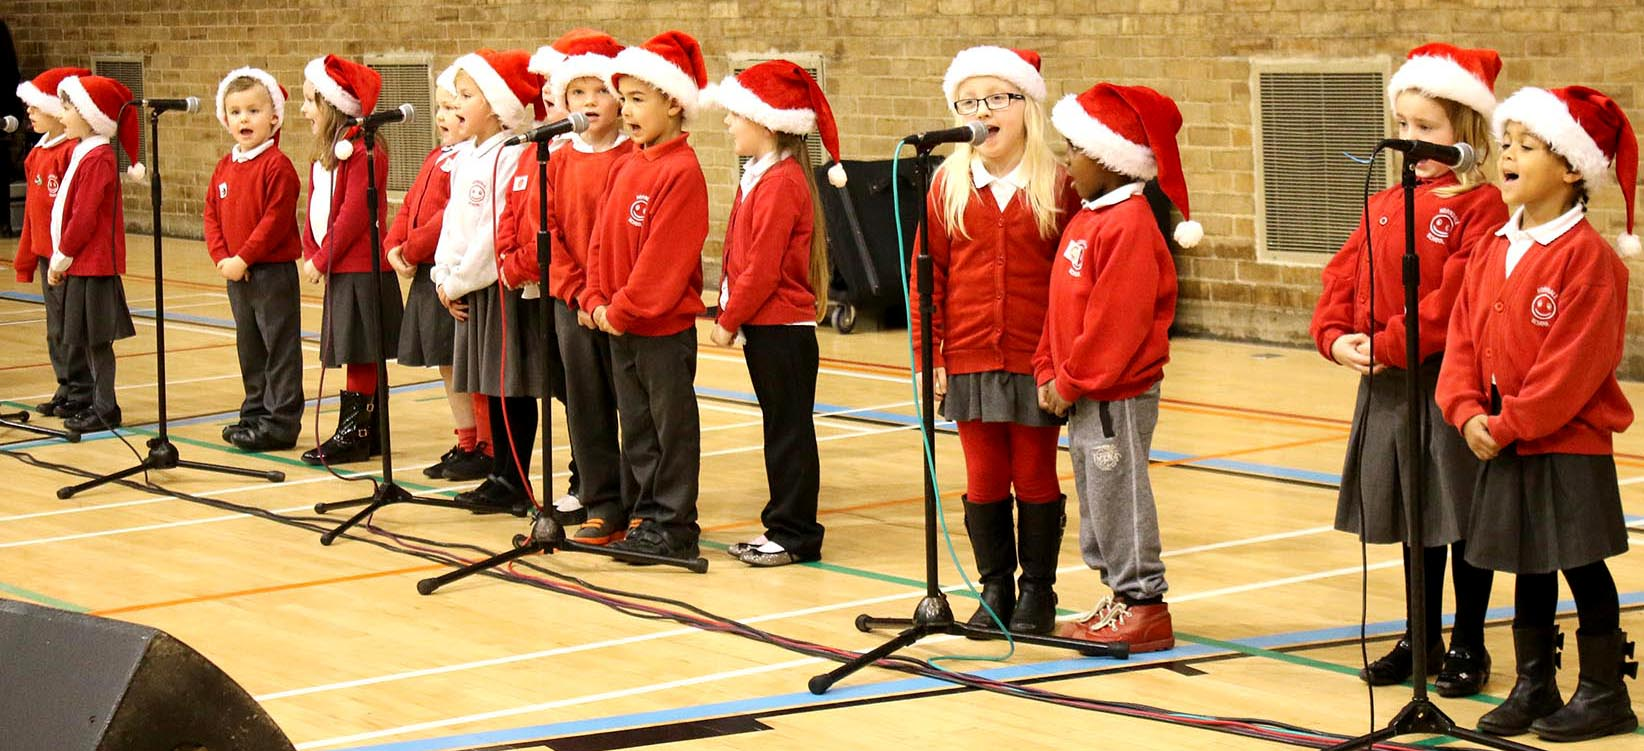 Don't Miss Aycliffe's Free Community Christmas Concert